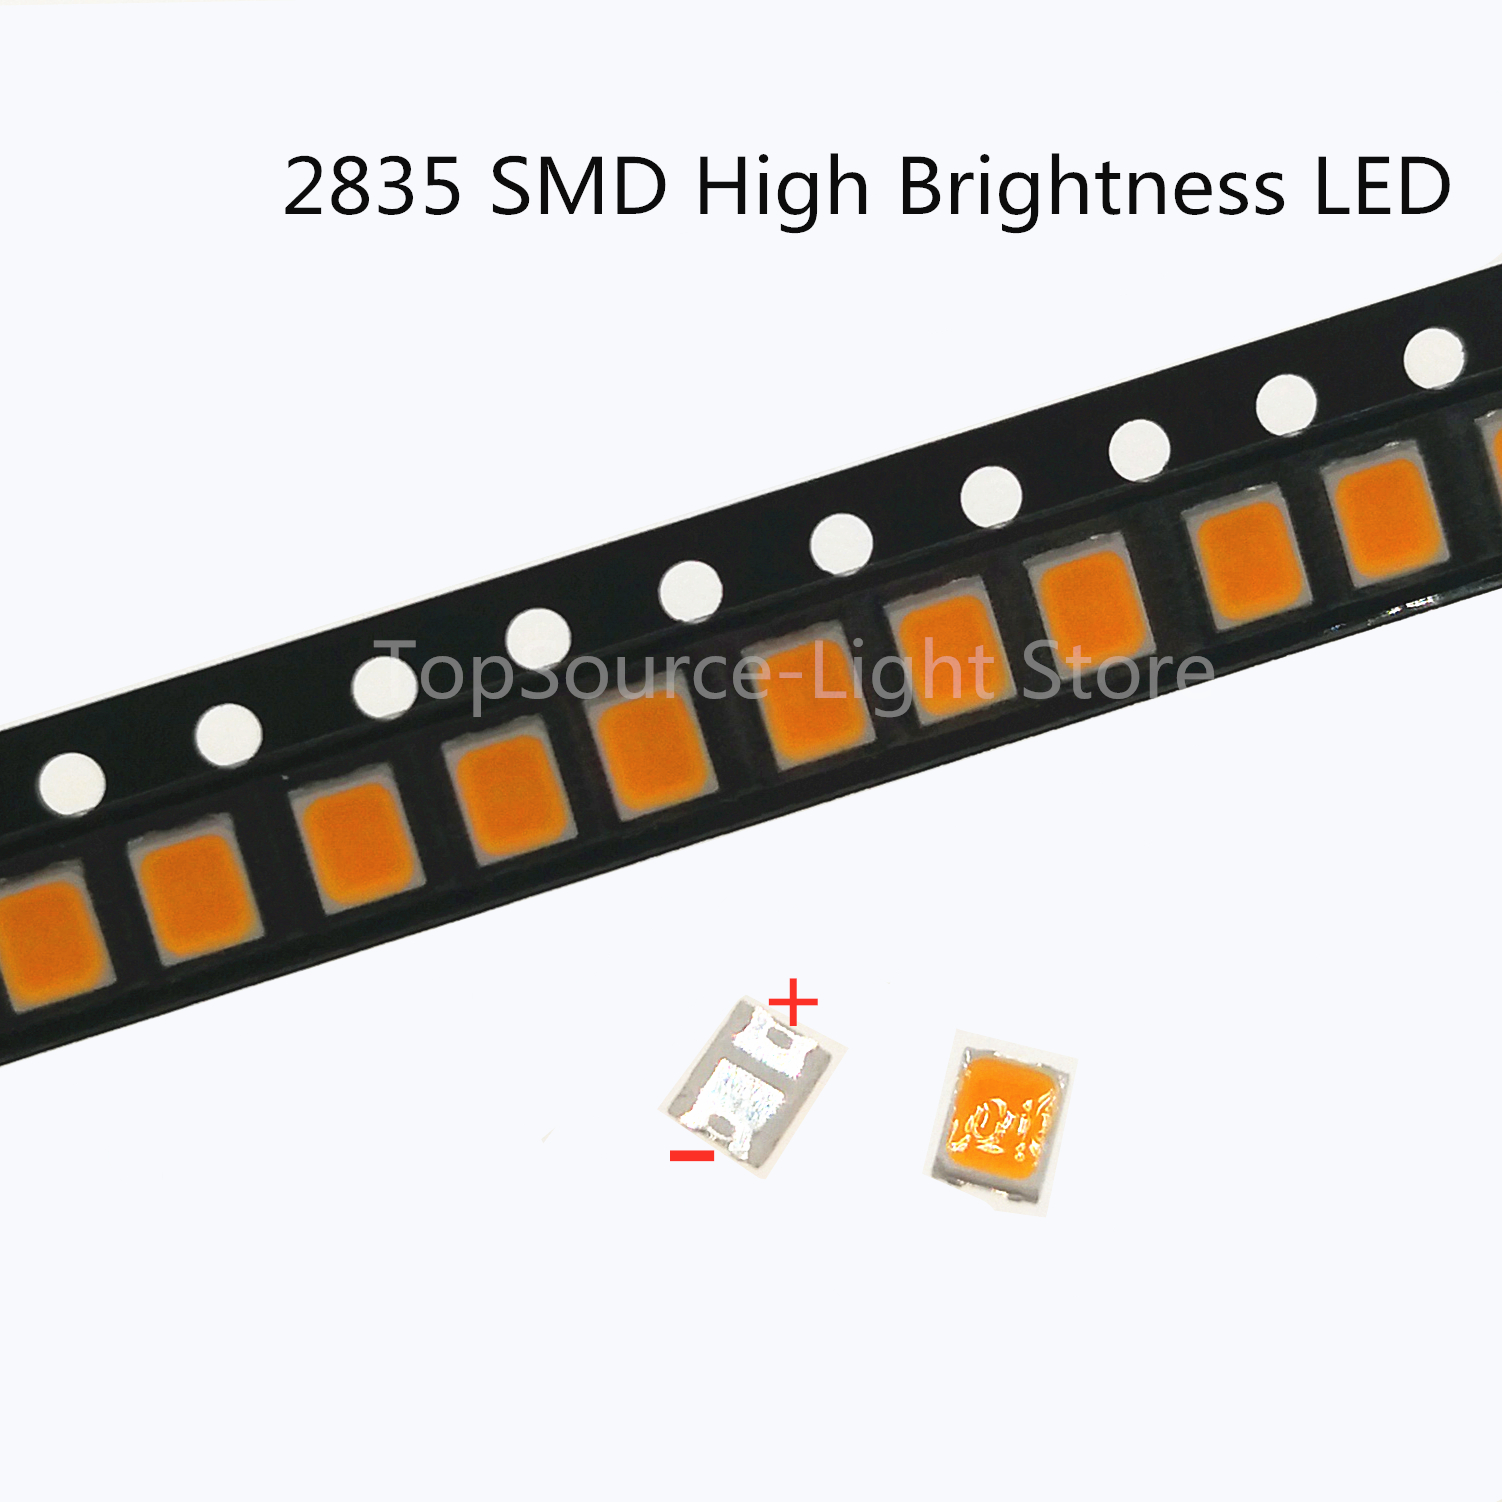 50Pcs High Brightness <font><b>2835</b></font> SMD <font><b>LED</b></font> Chip 1W 18V 9V 6V 3V 36V Warm Nature Cold White <font><b>LED</b></font> 3000K-9500K Light Emitting Diode Lamp image